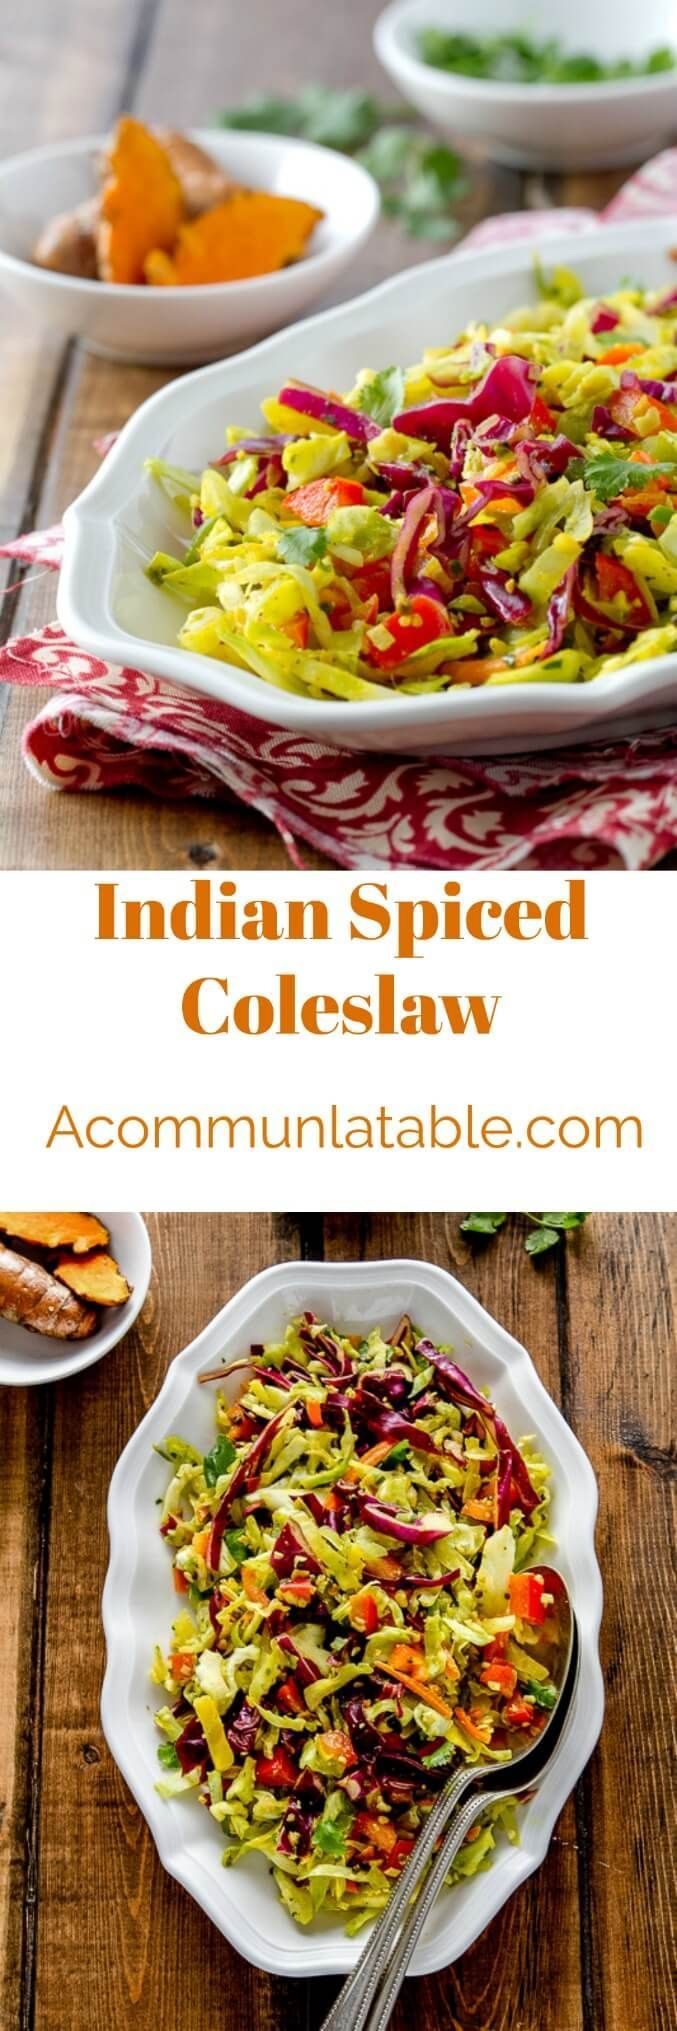 Indian spiced coleslaw is a healthy, no mayo coleslaw recipe with a lovely turmeric spiced dressing that goes with almost anything! #coleslaw #coleslawrecipe #indianrecipes